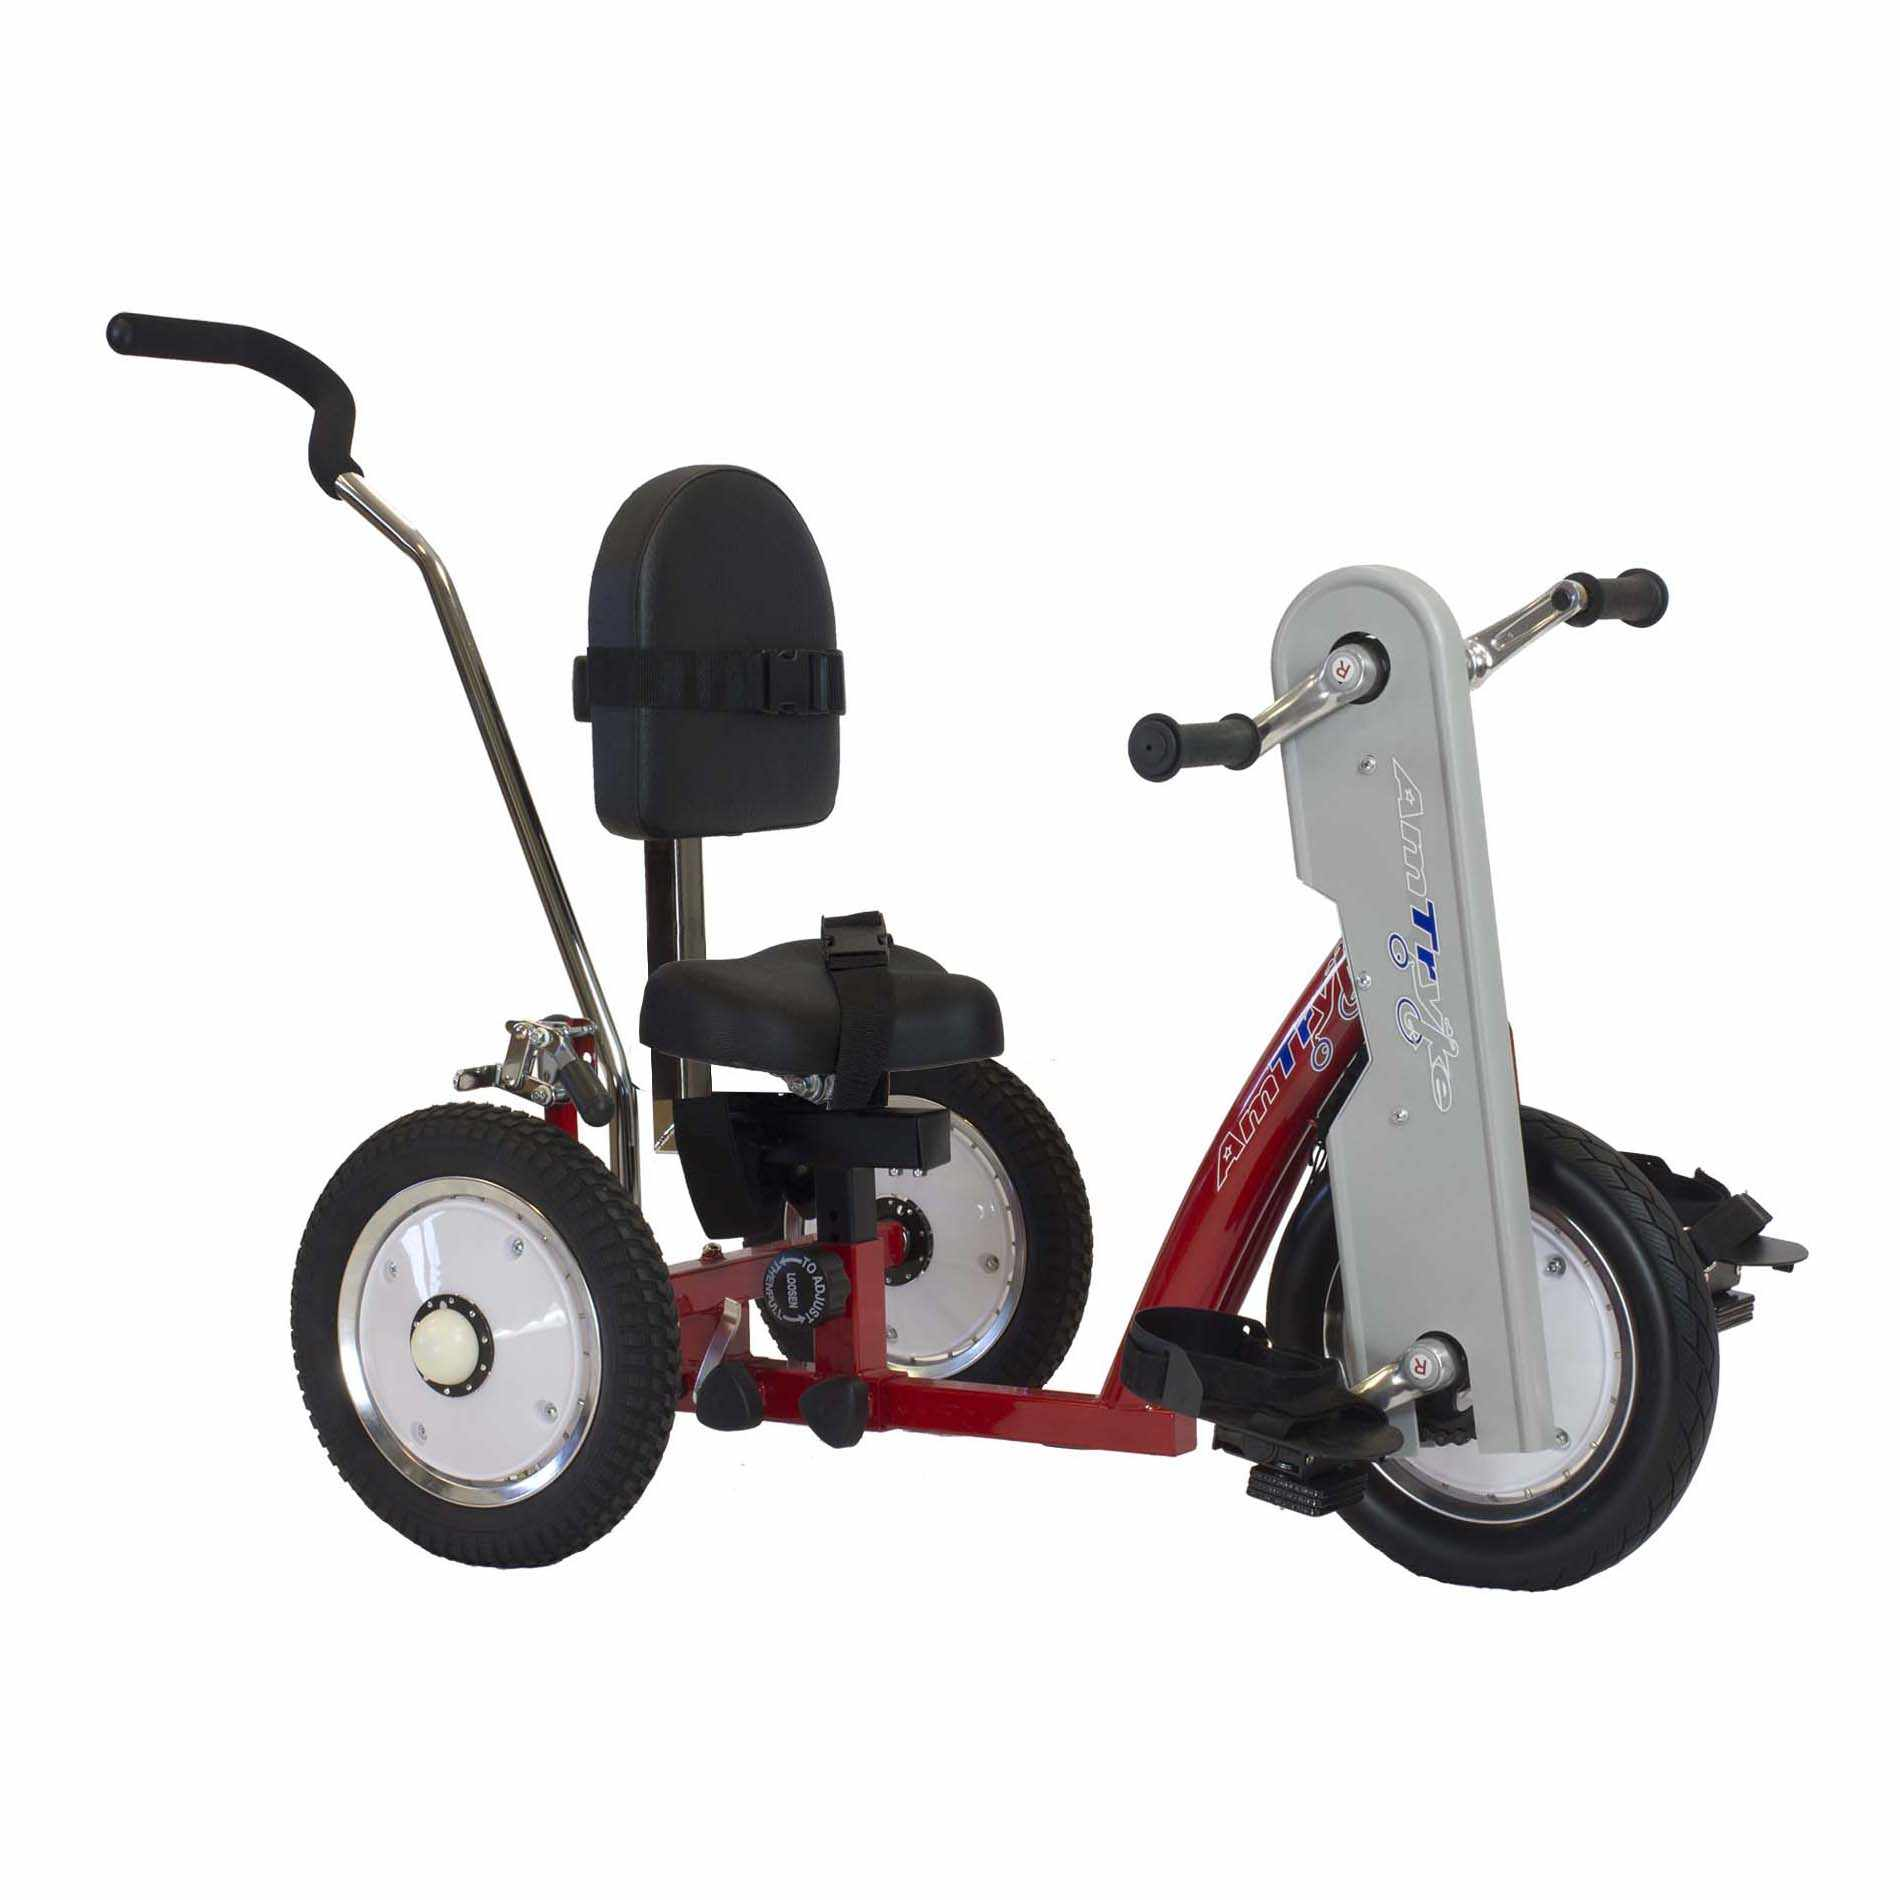 Amtryke AM-12S small tricycle with 1600 seating system